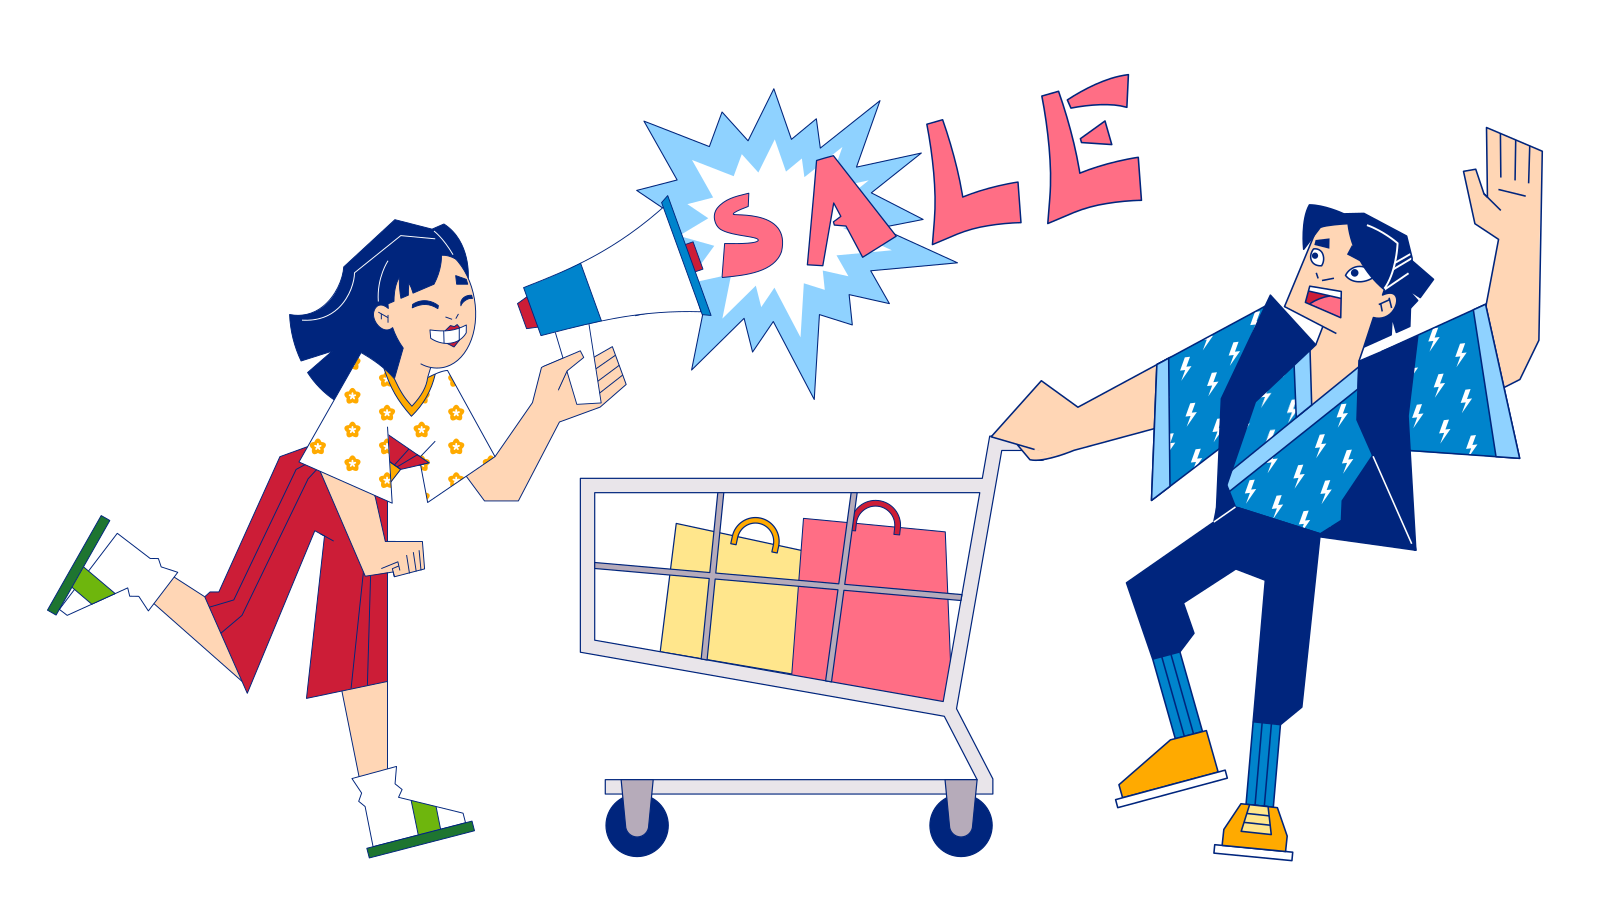 style Sale Vector images in PNG and SVG | Icons8 Illustrations